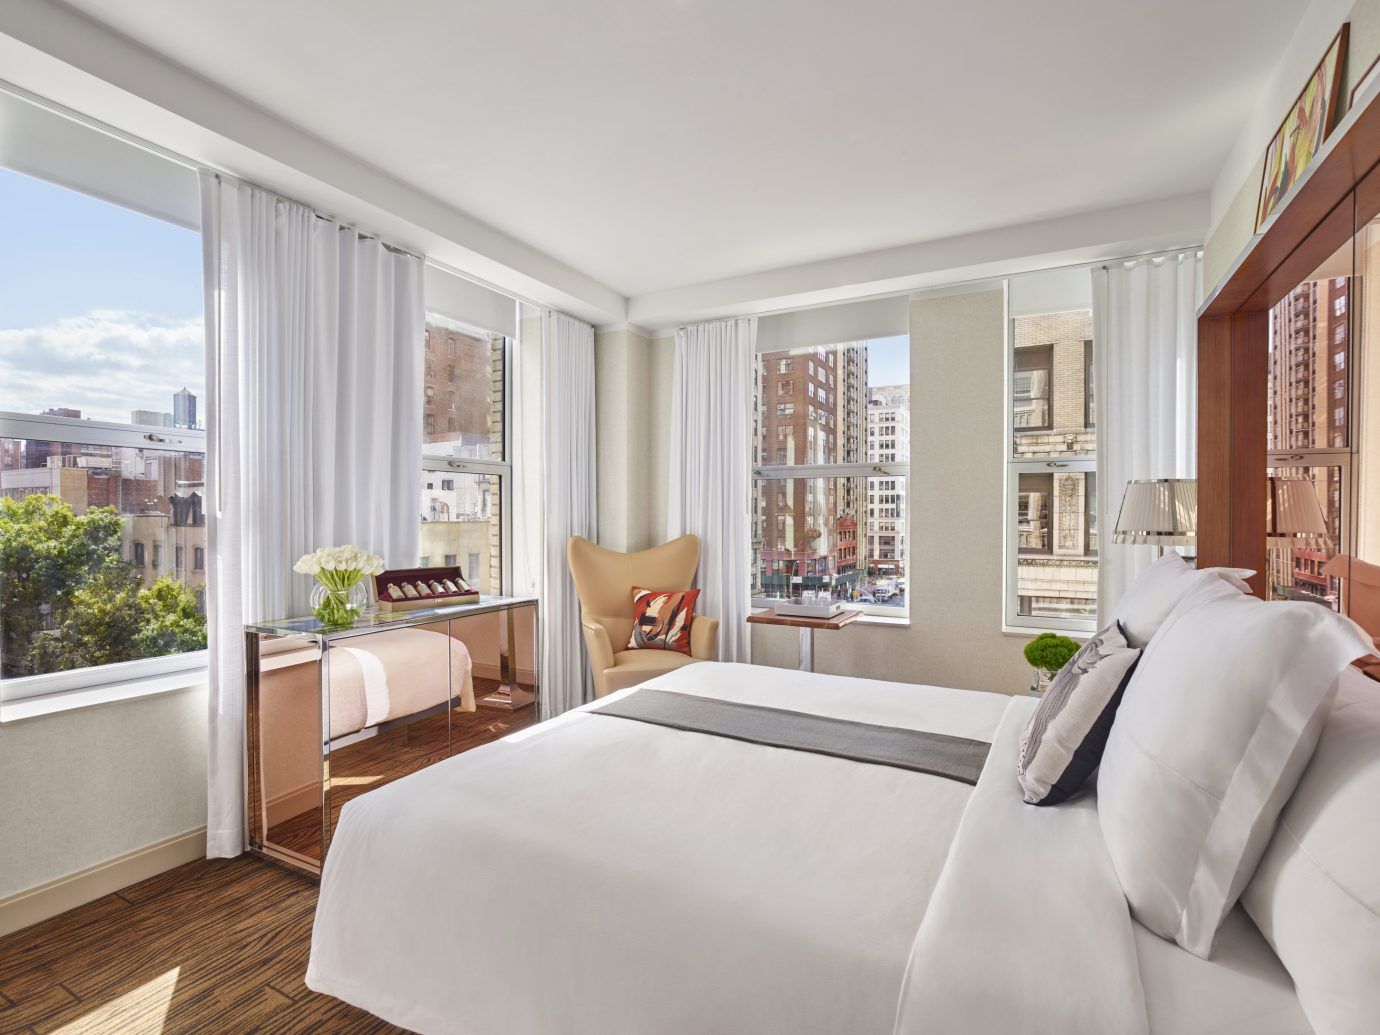 NYC Trip Ideas indoor window sofa wall floor room ceiling bed property interior design hotel Living real estate bed frame Bedroom Suite home white estate window treatment window covering pillow interior designer penthouse apartment furniture apartment decorated Modern